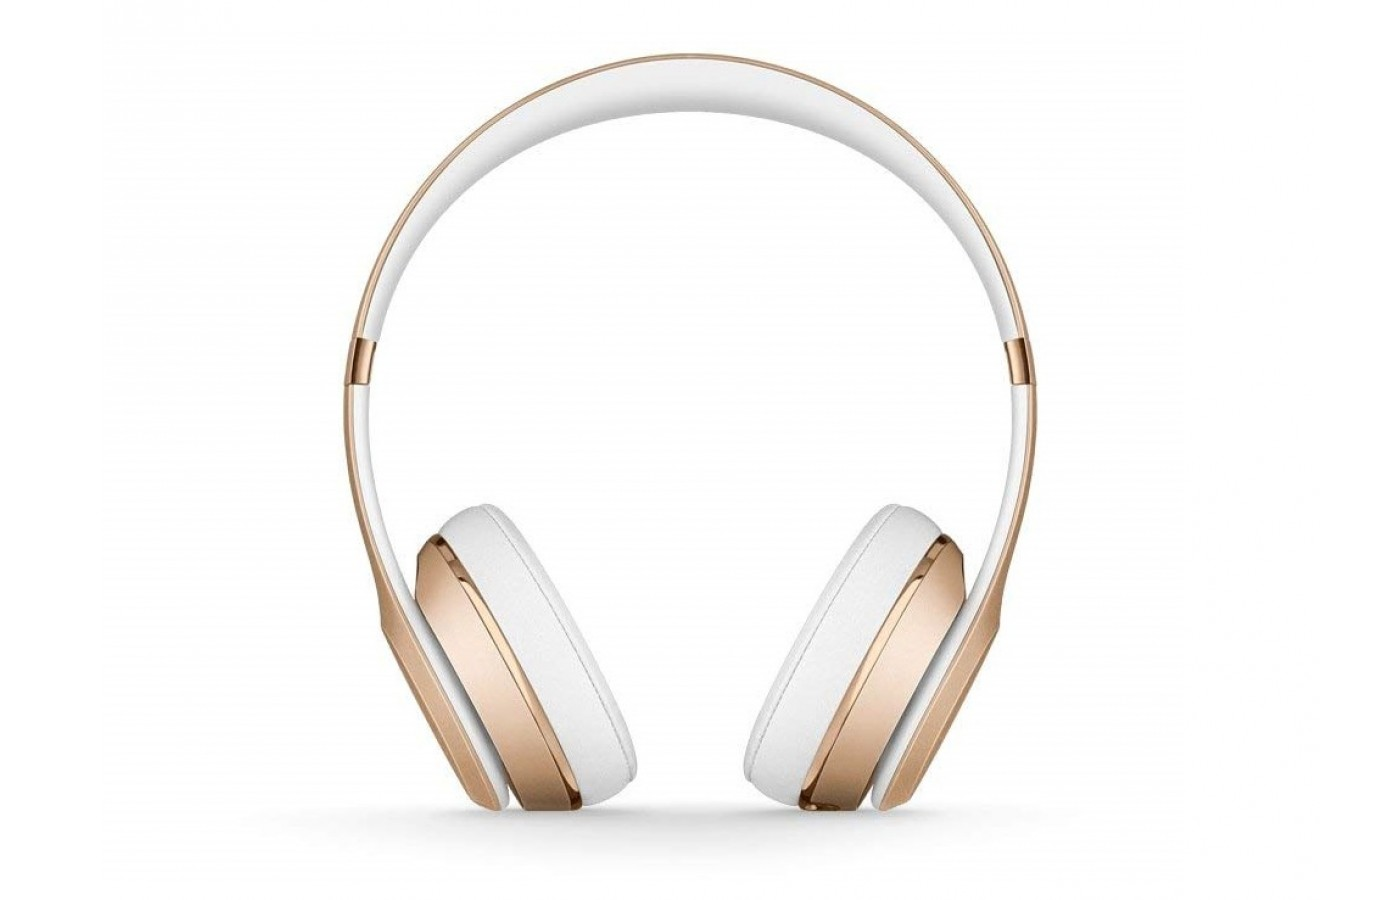 The Beats Solo 3 offers fine-tuned acoustics for better clarity and balance.